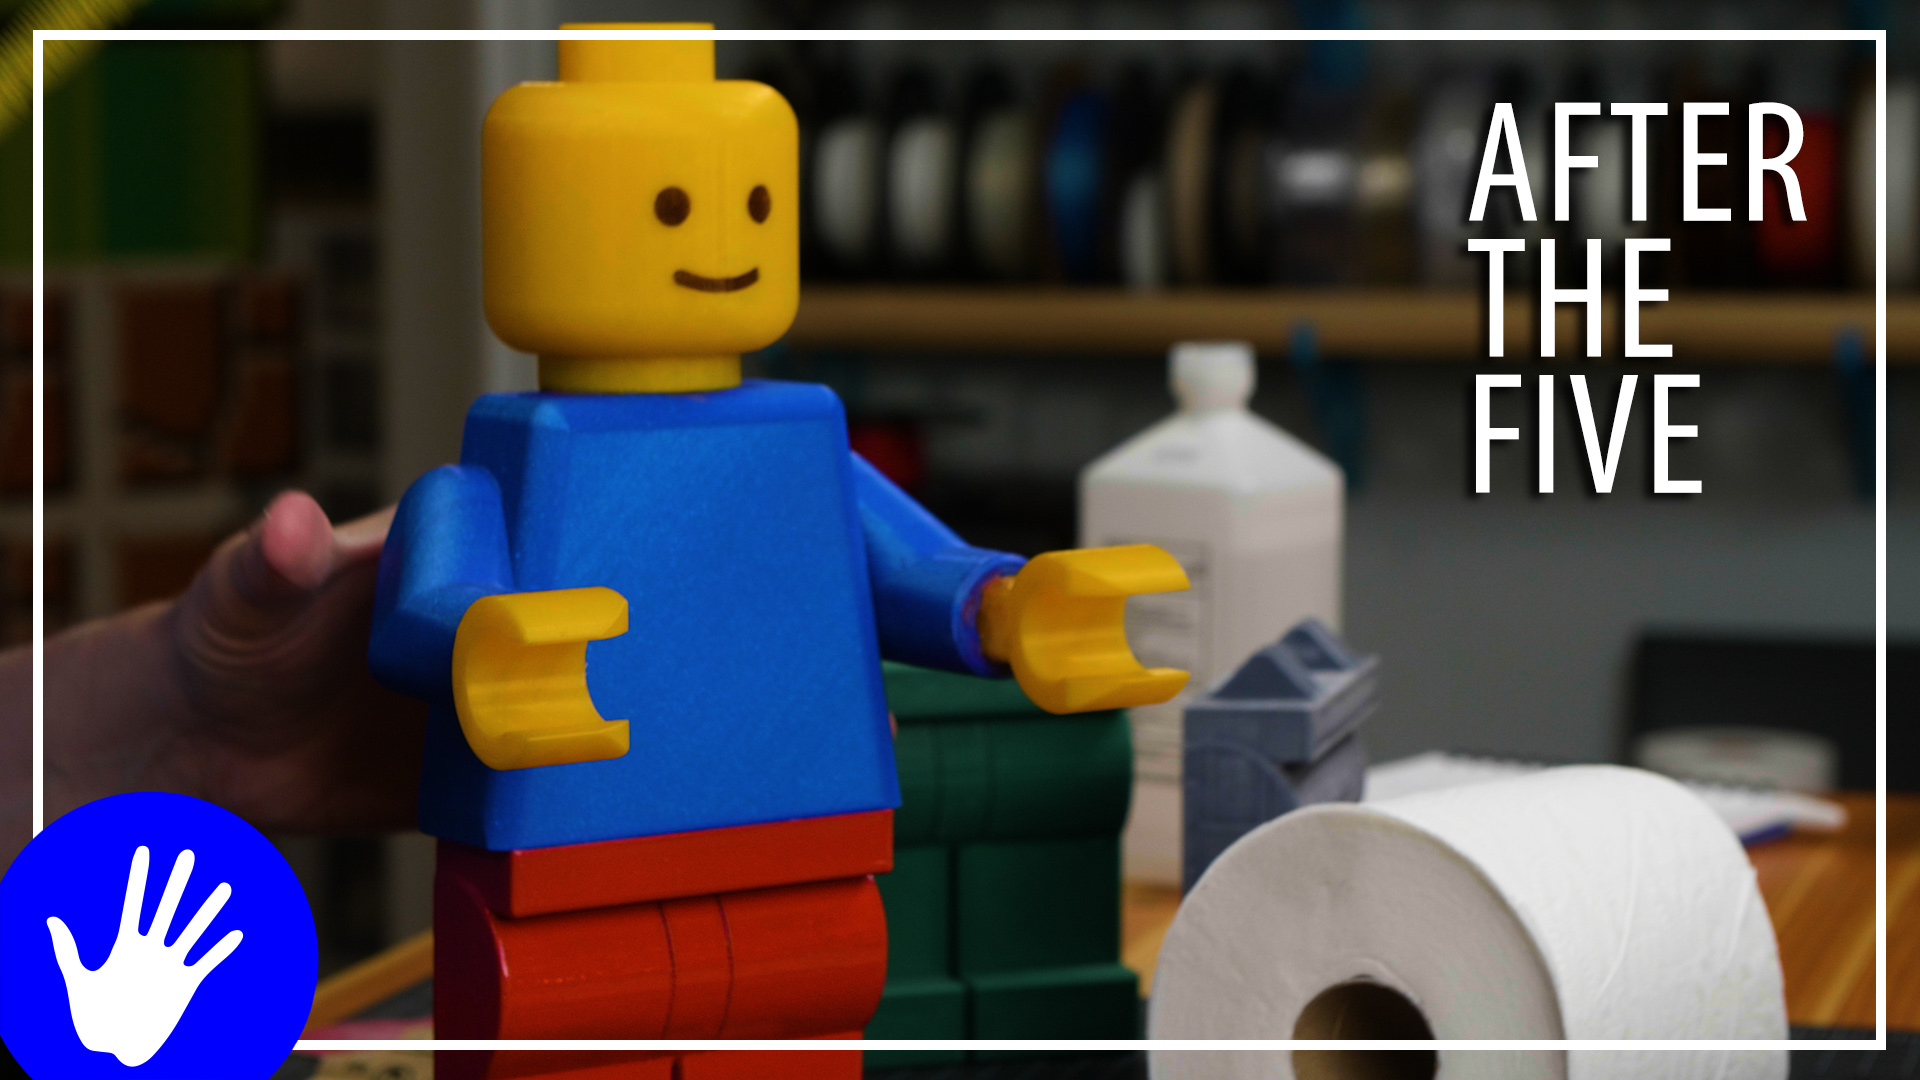 After The Five – LEGO TOILET PAPER HOLDER PAINTED PANTS